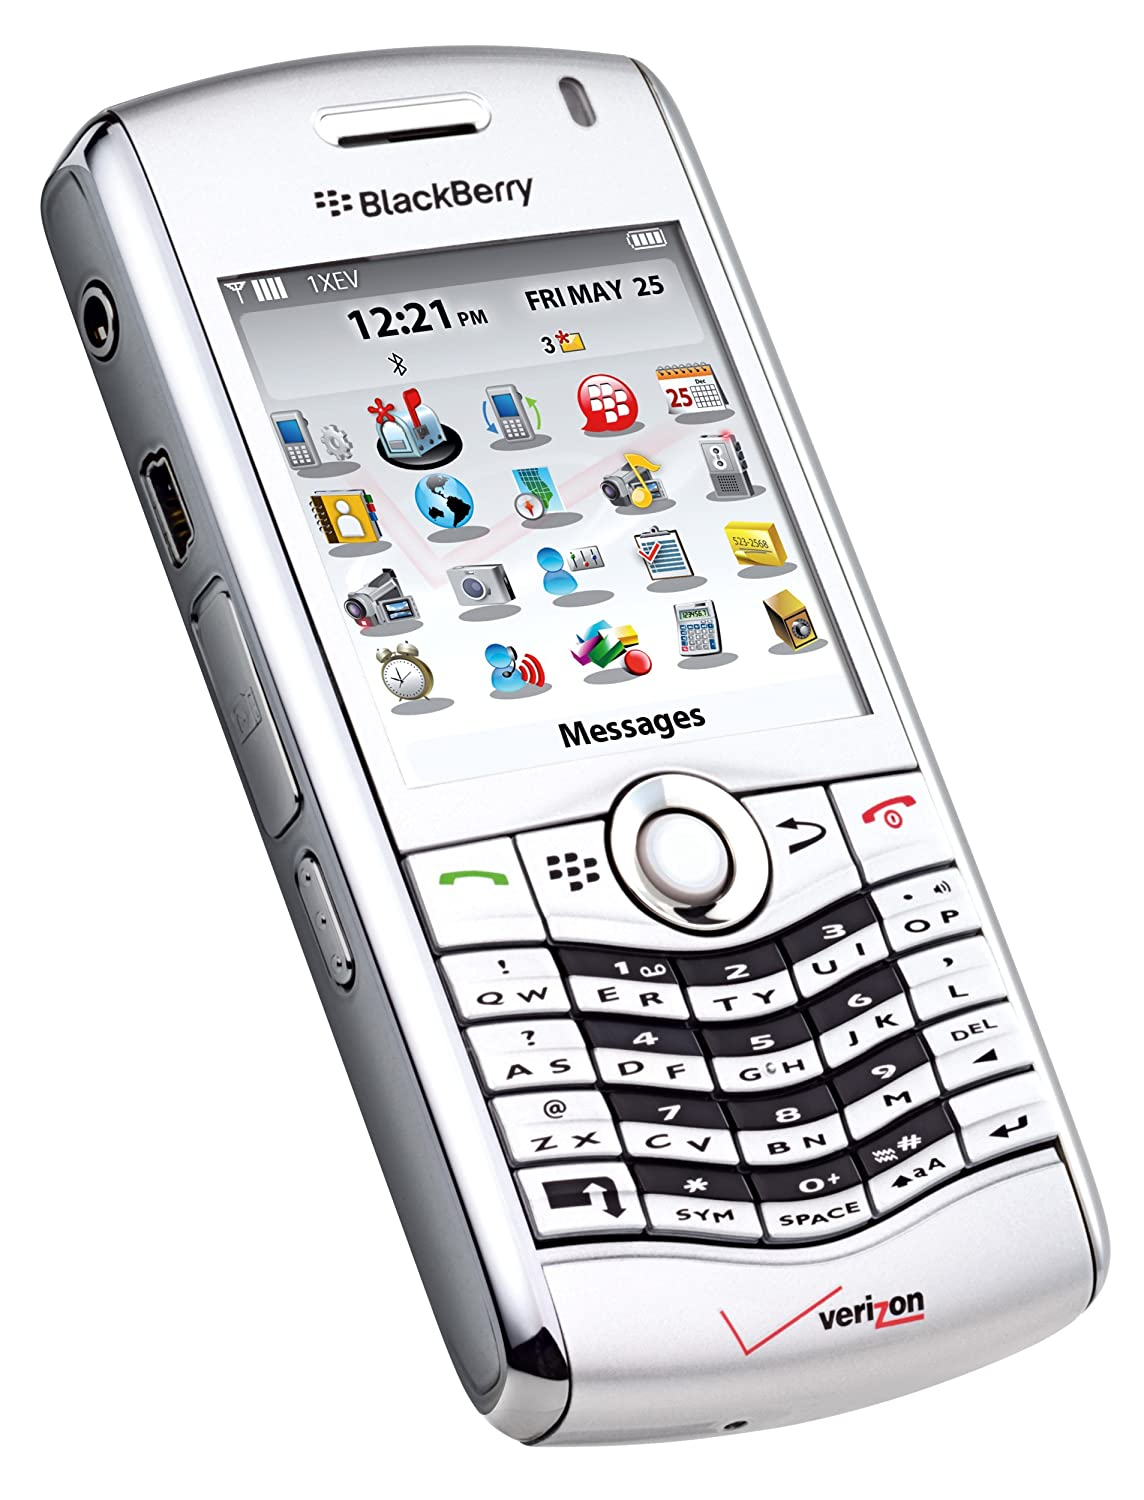 Amazon.com: BlackBerry Pearl 8130 Phone, Silver (Verizon Wireless): Cell  Phones & Accessories